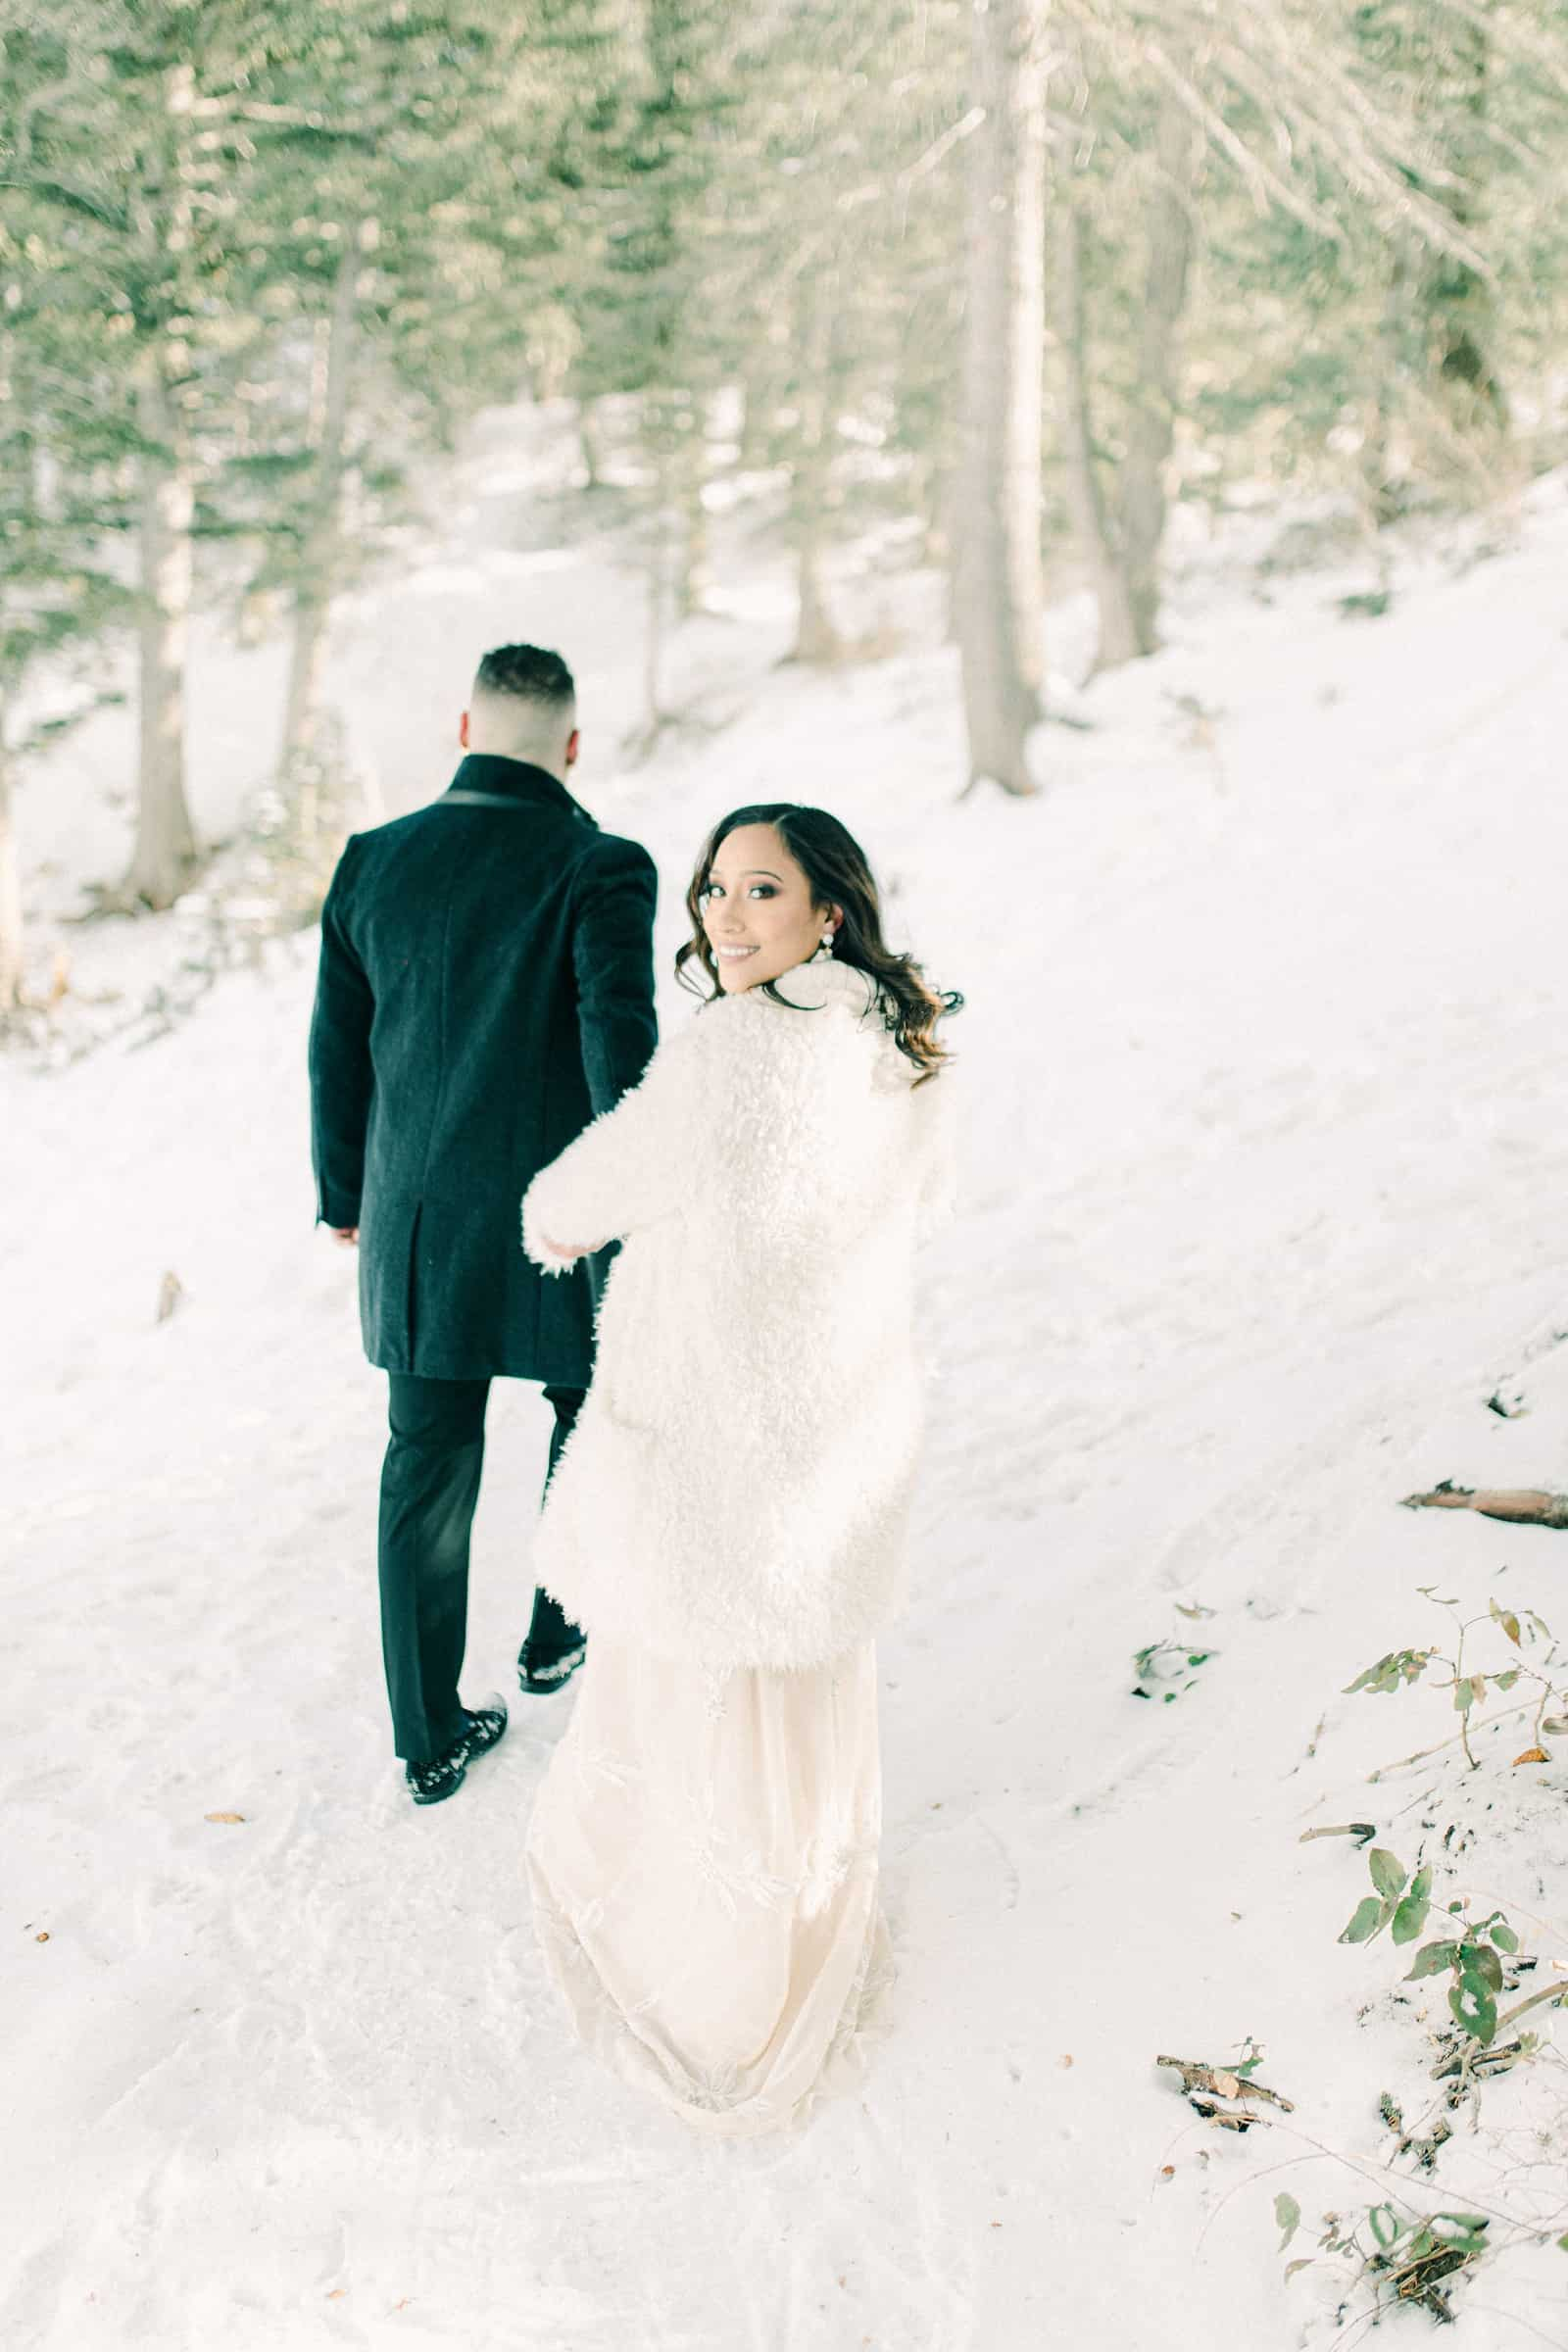 Outfits for winter wedding engagement session, walking through snowy forest